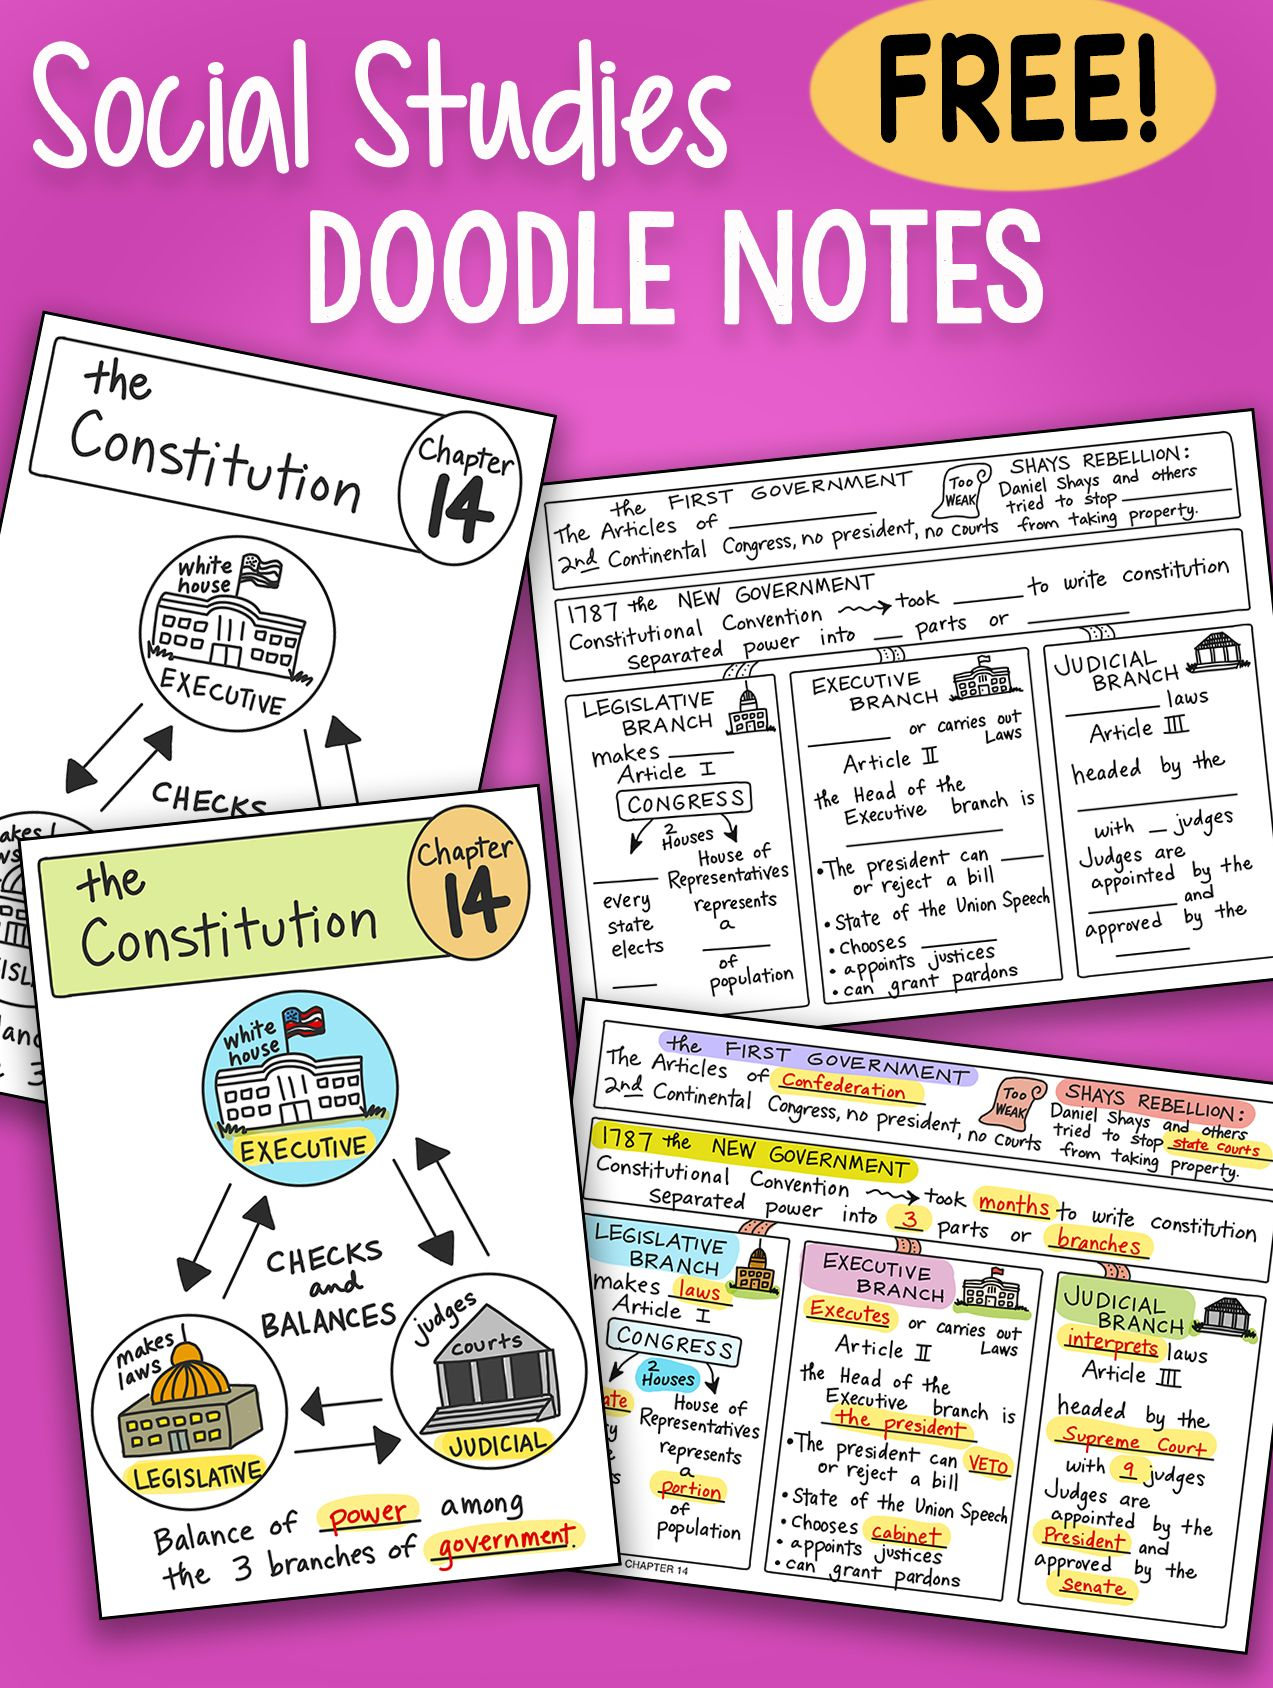 Free Doodle Notes All About The Constitution So Fun And Engaging Free Printable Plus Powerpoin Doodle Notes Social Studies Notebook Social Studies Projects